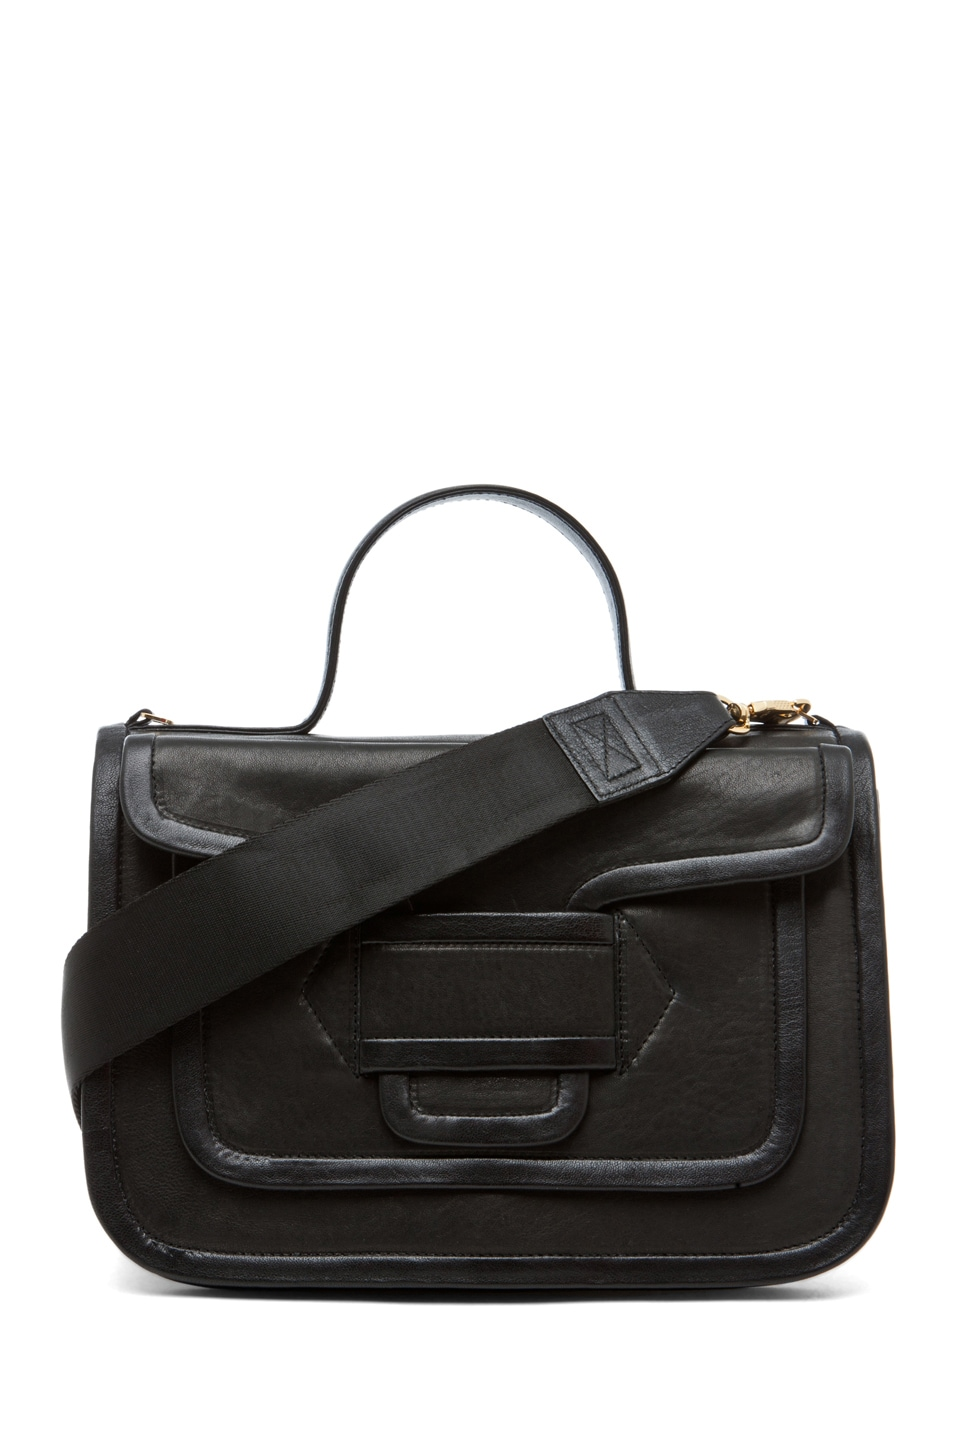 Image 1 of Pierre Hardy Large Satchel in Black